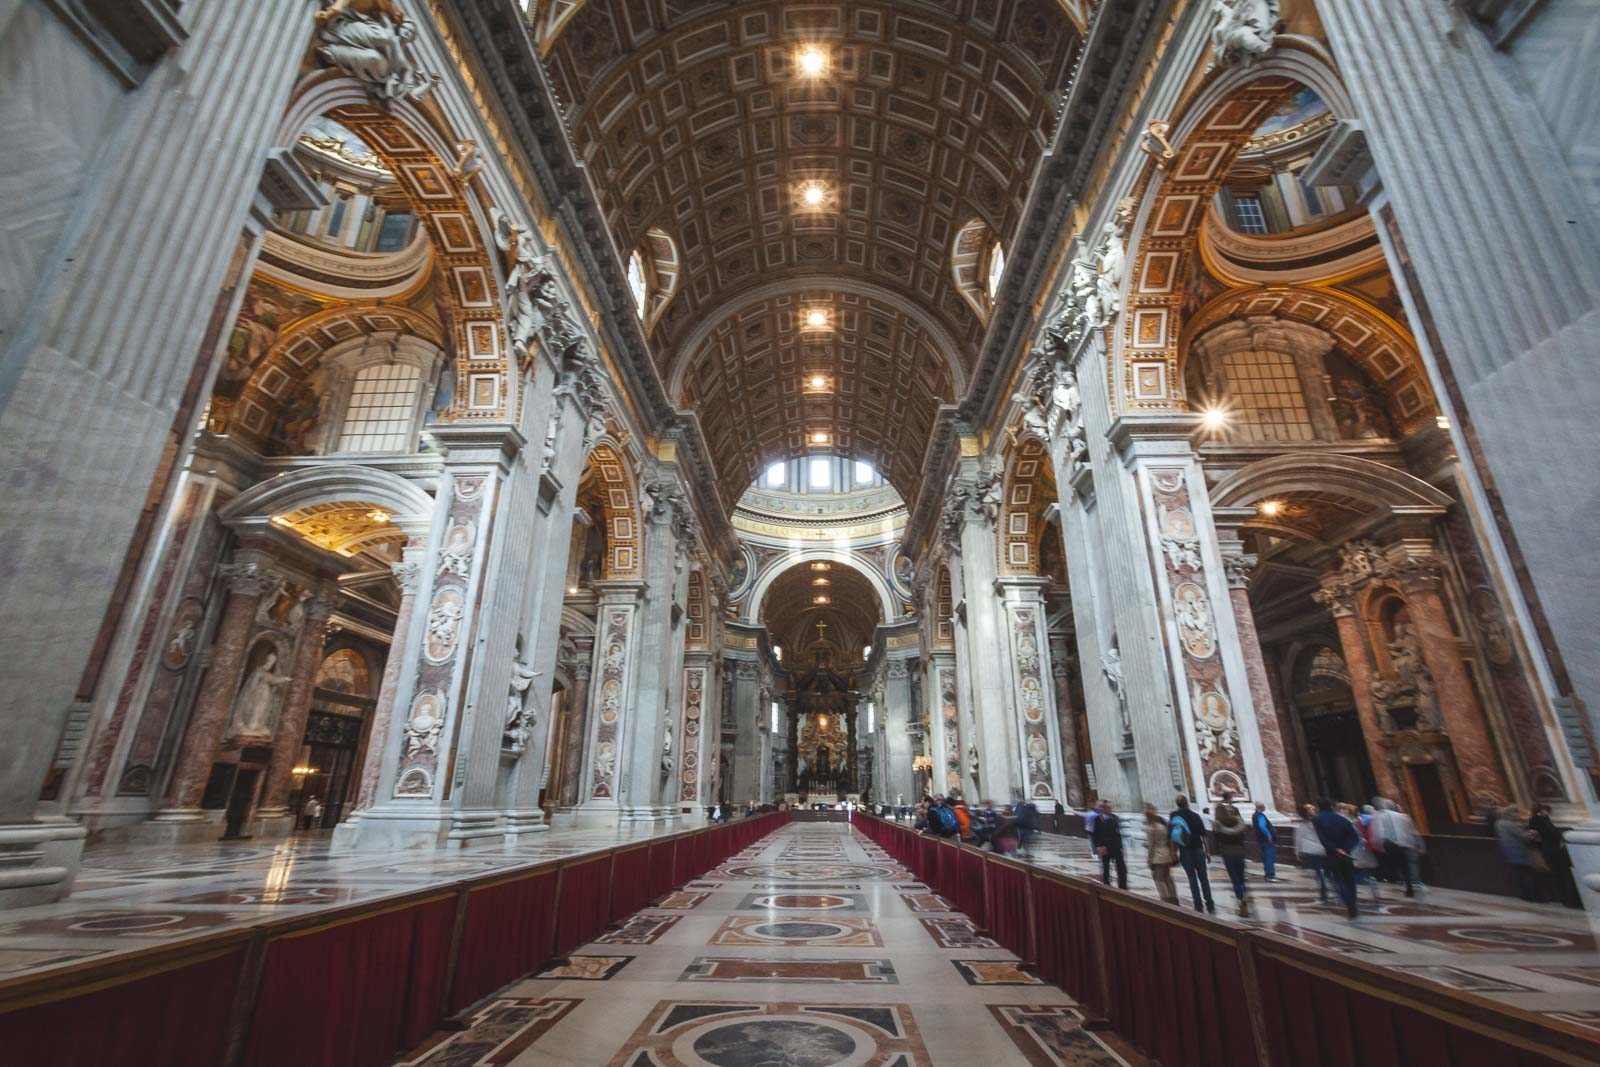 Interestin Rome Fact about St. Peters Basilica